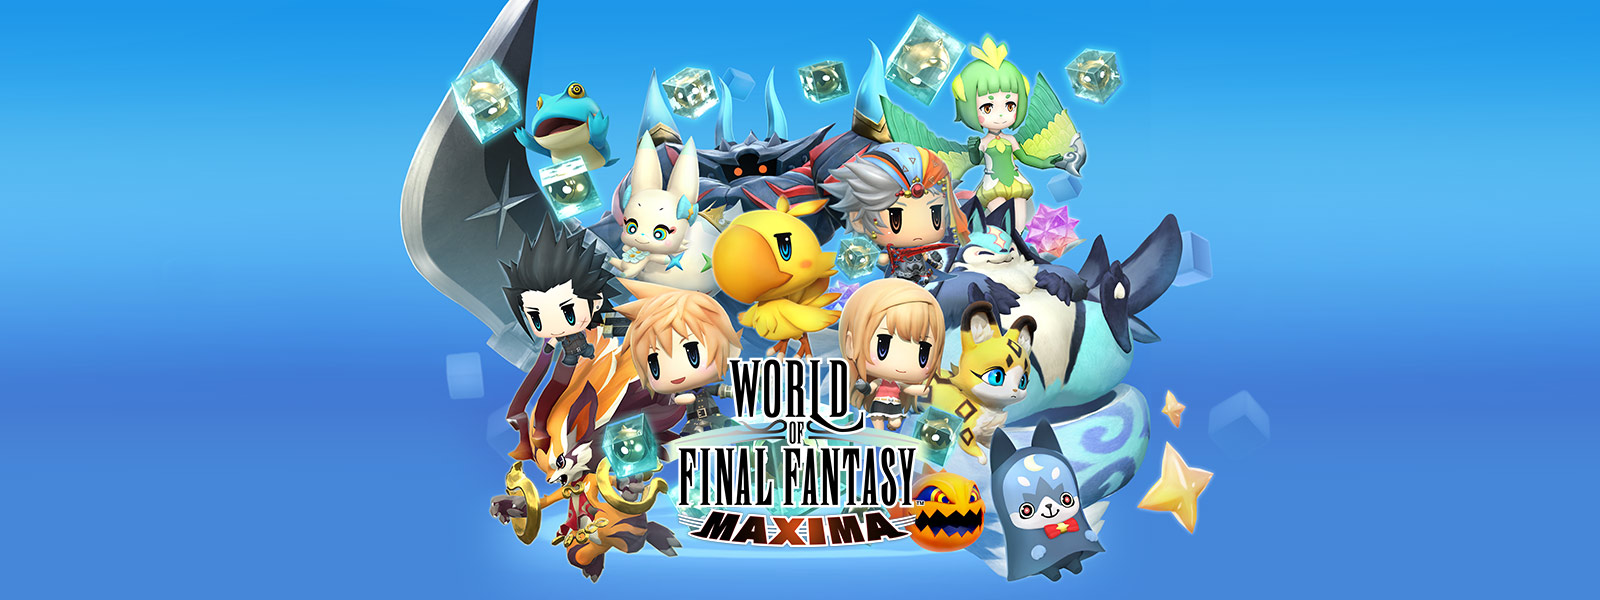 WORLD OF FINAL FANTASY MAXIMA, Characters jumping out from the centre of the screen